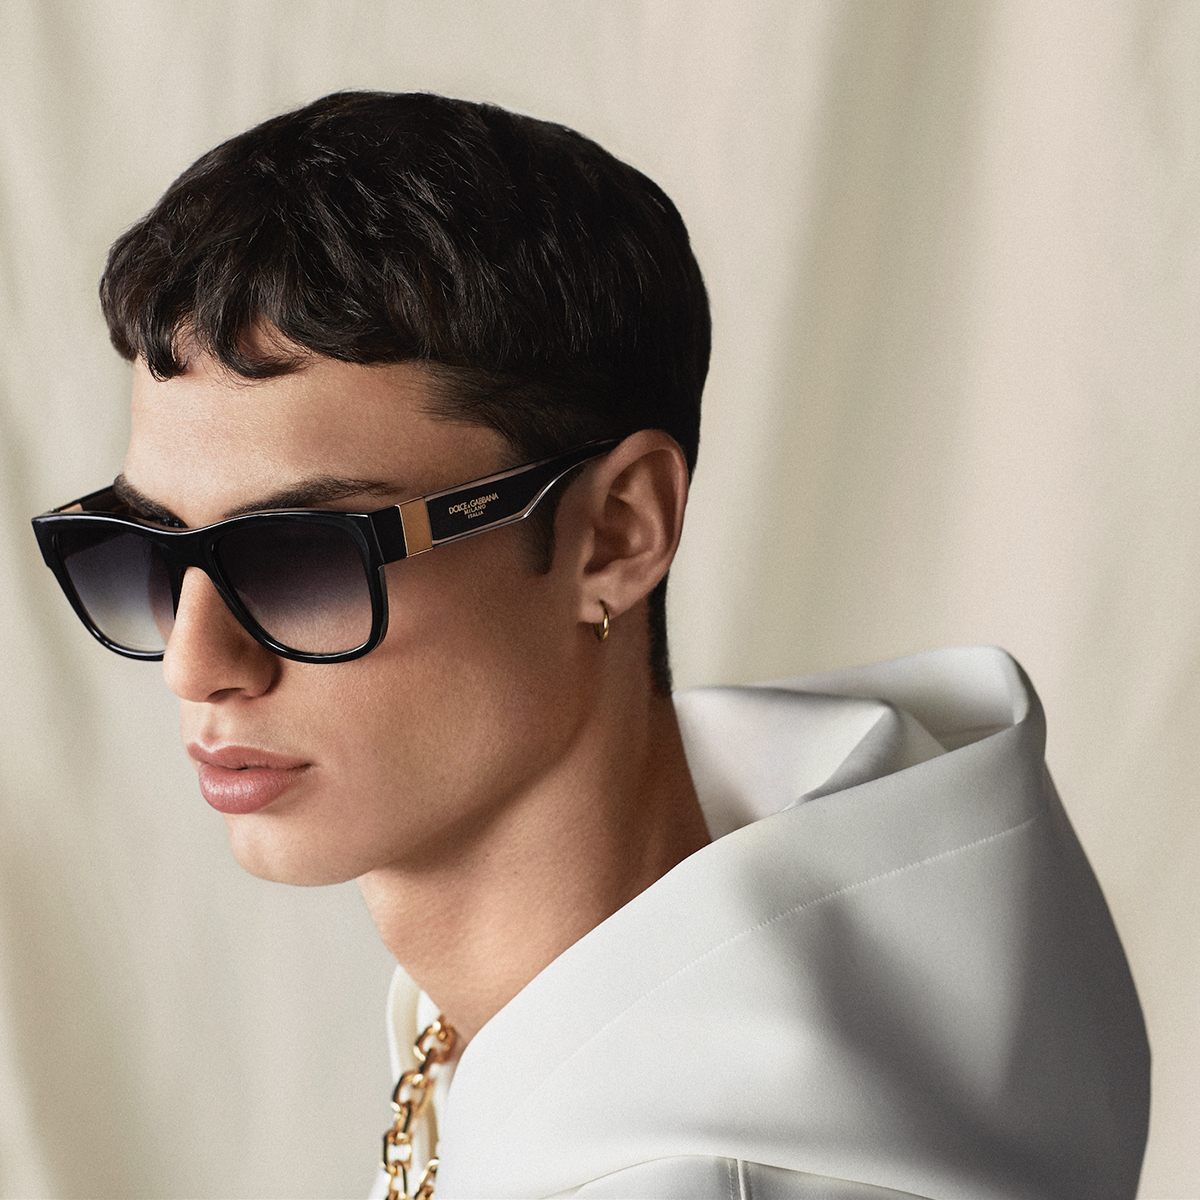 The #DolceGabbana sunglasses include refined gold details.  Discover the #DGEyewear at the link: